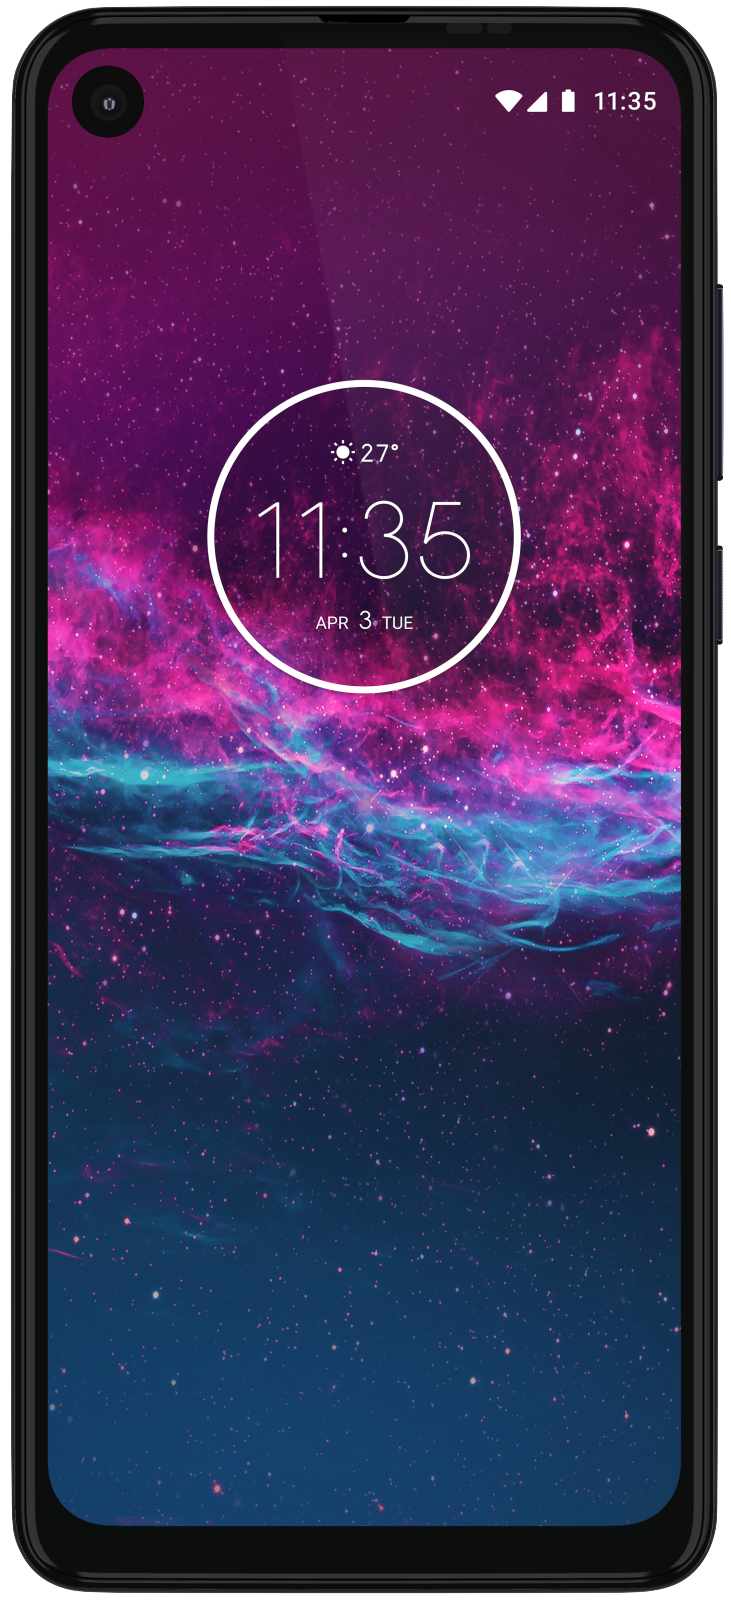 motorola-one-action-cropped.png?itok=Toh